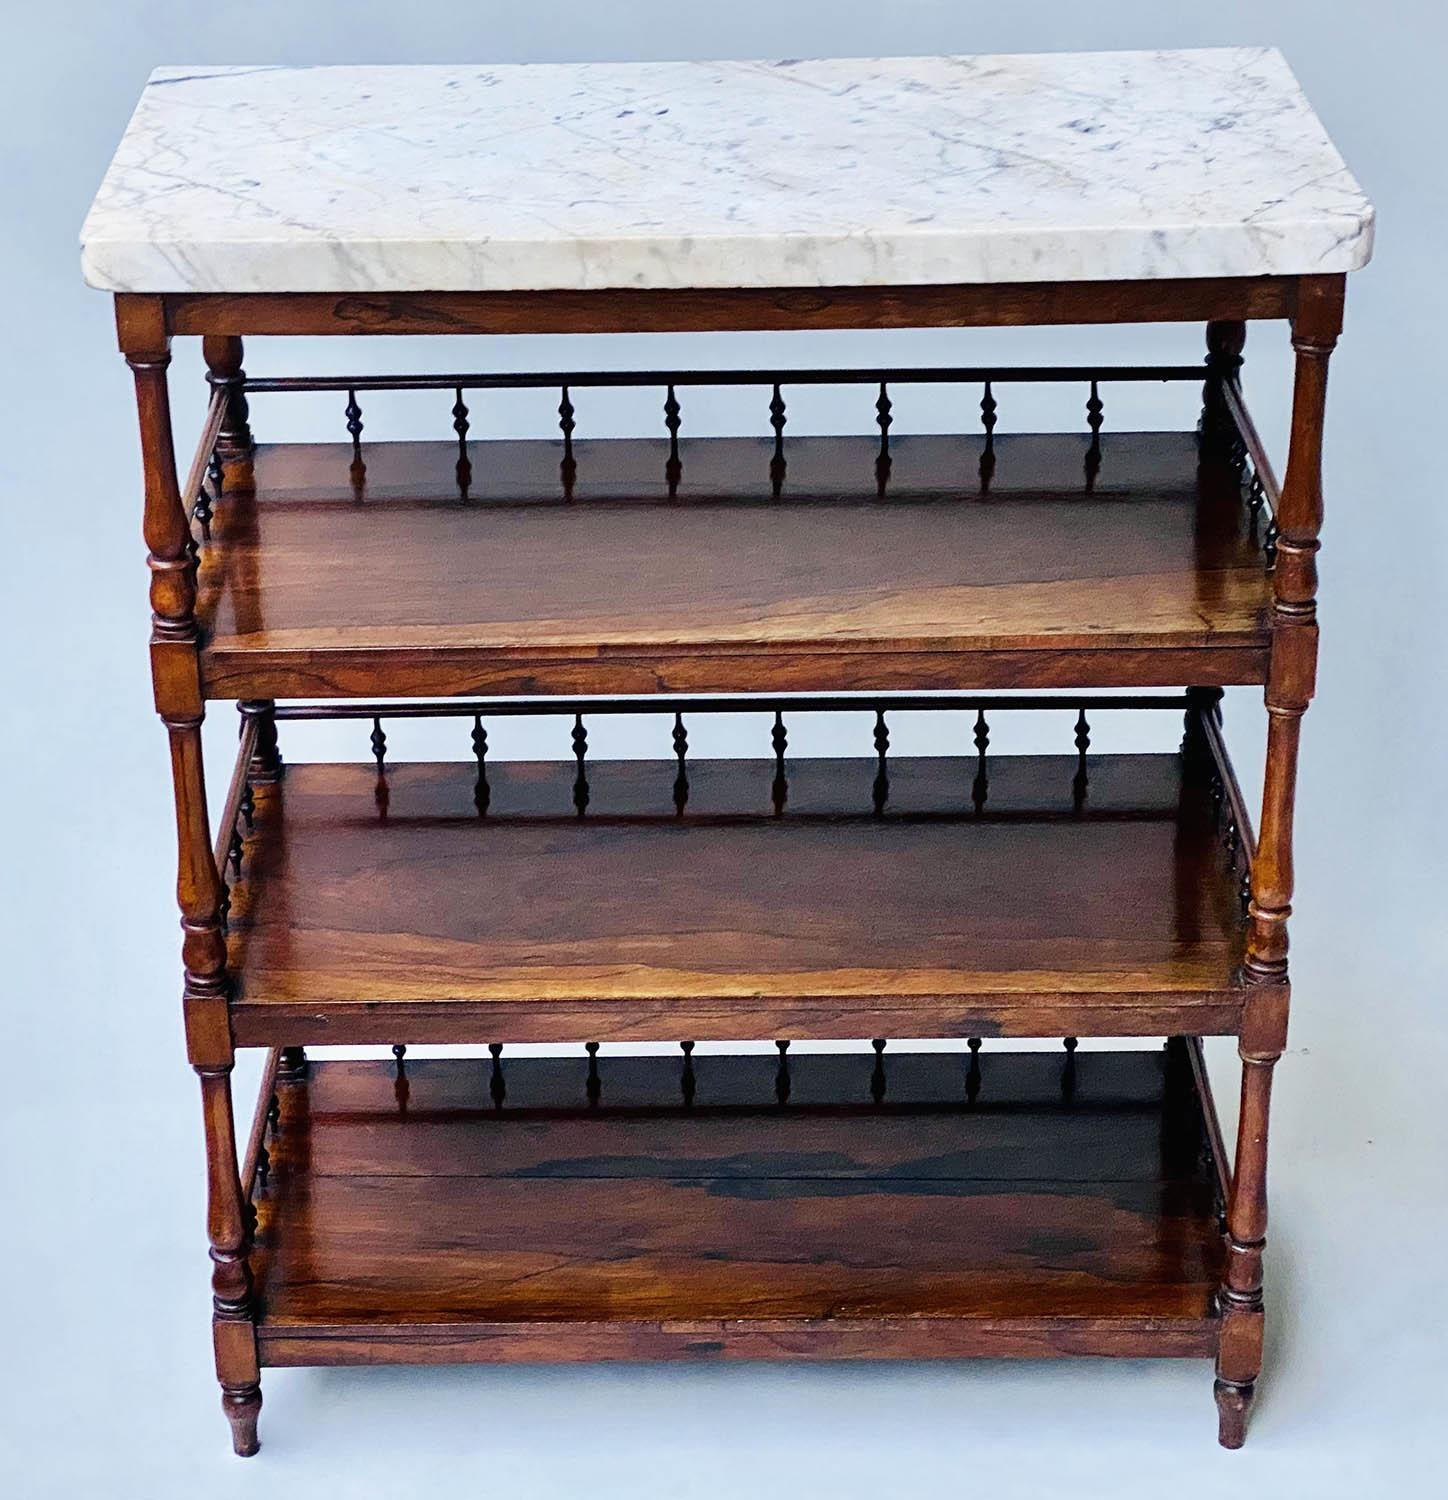 ETAGERE, early 19th century William IV rosewood with grey veined white marble top above three - Image 2 of 6